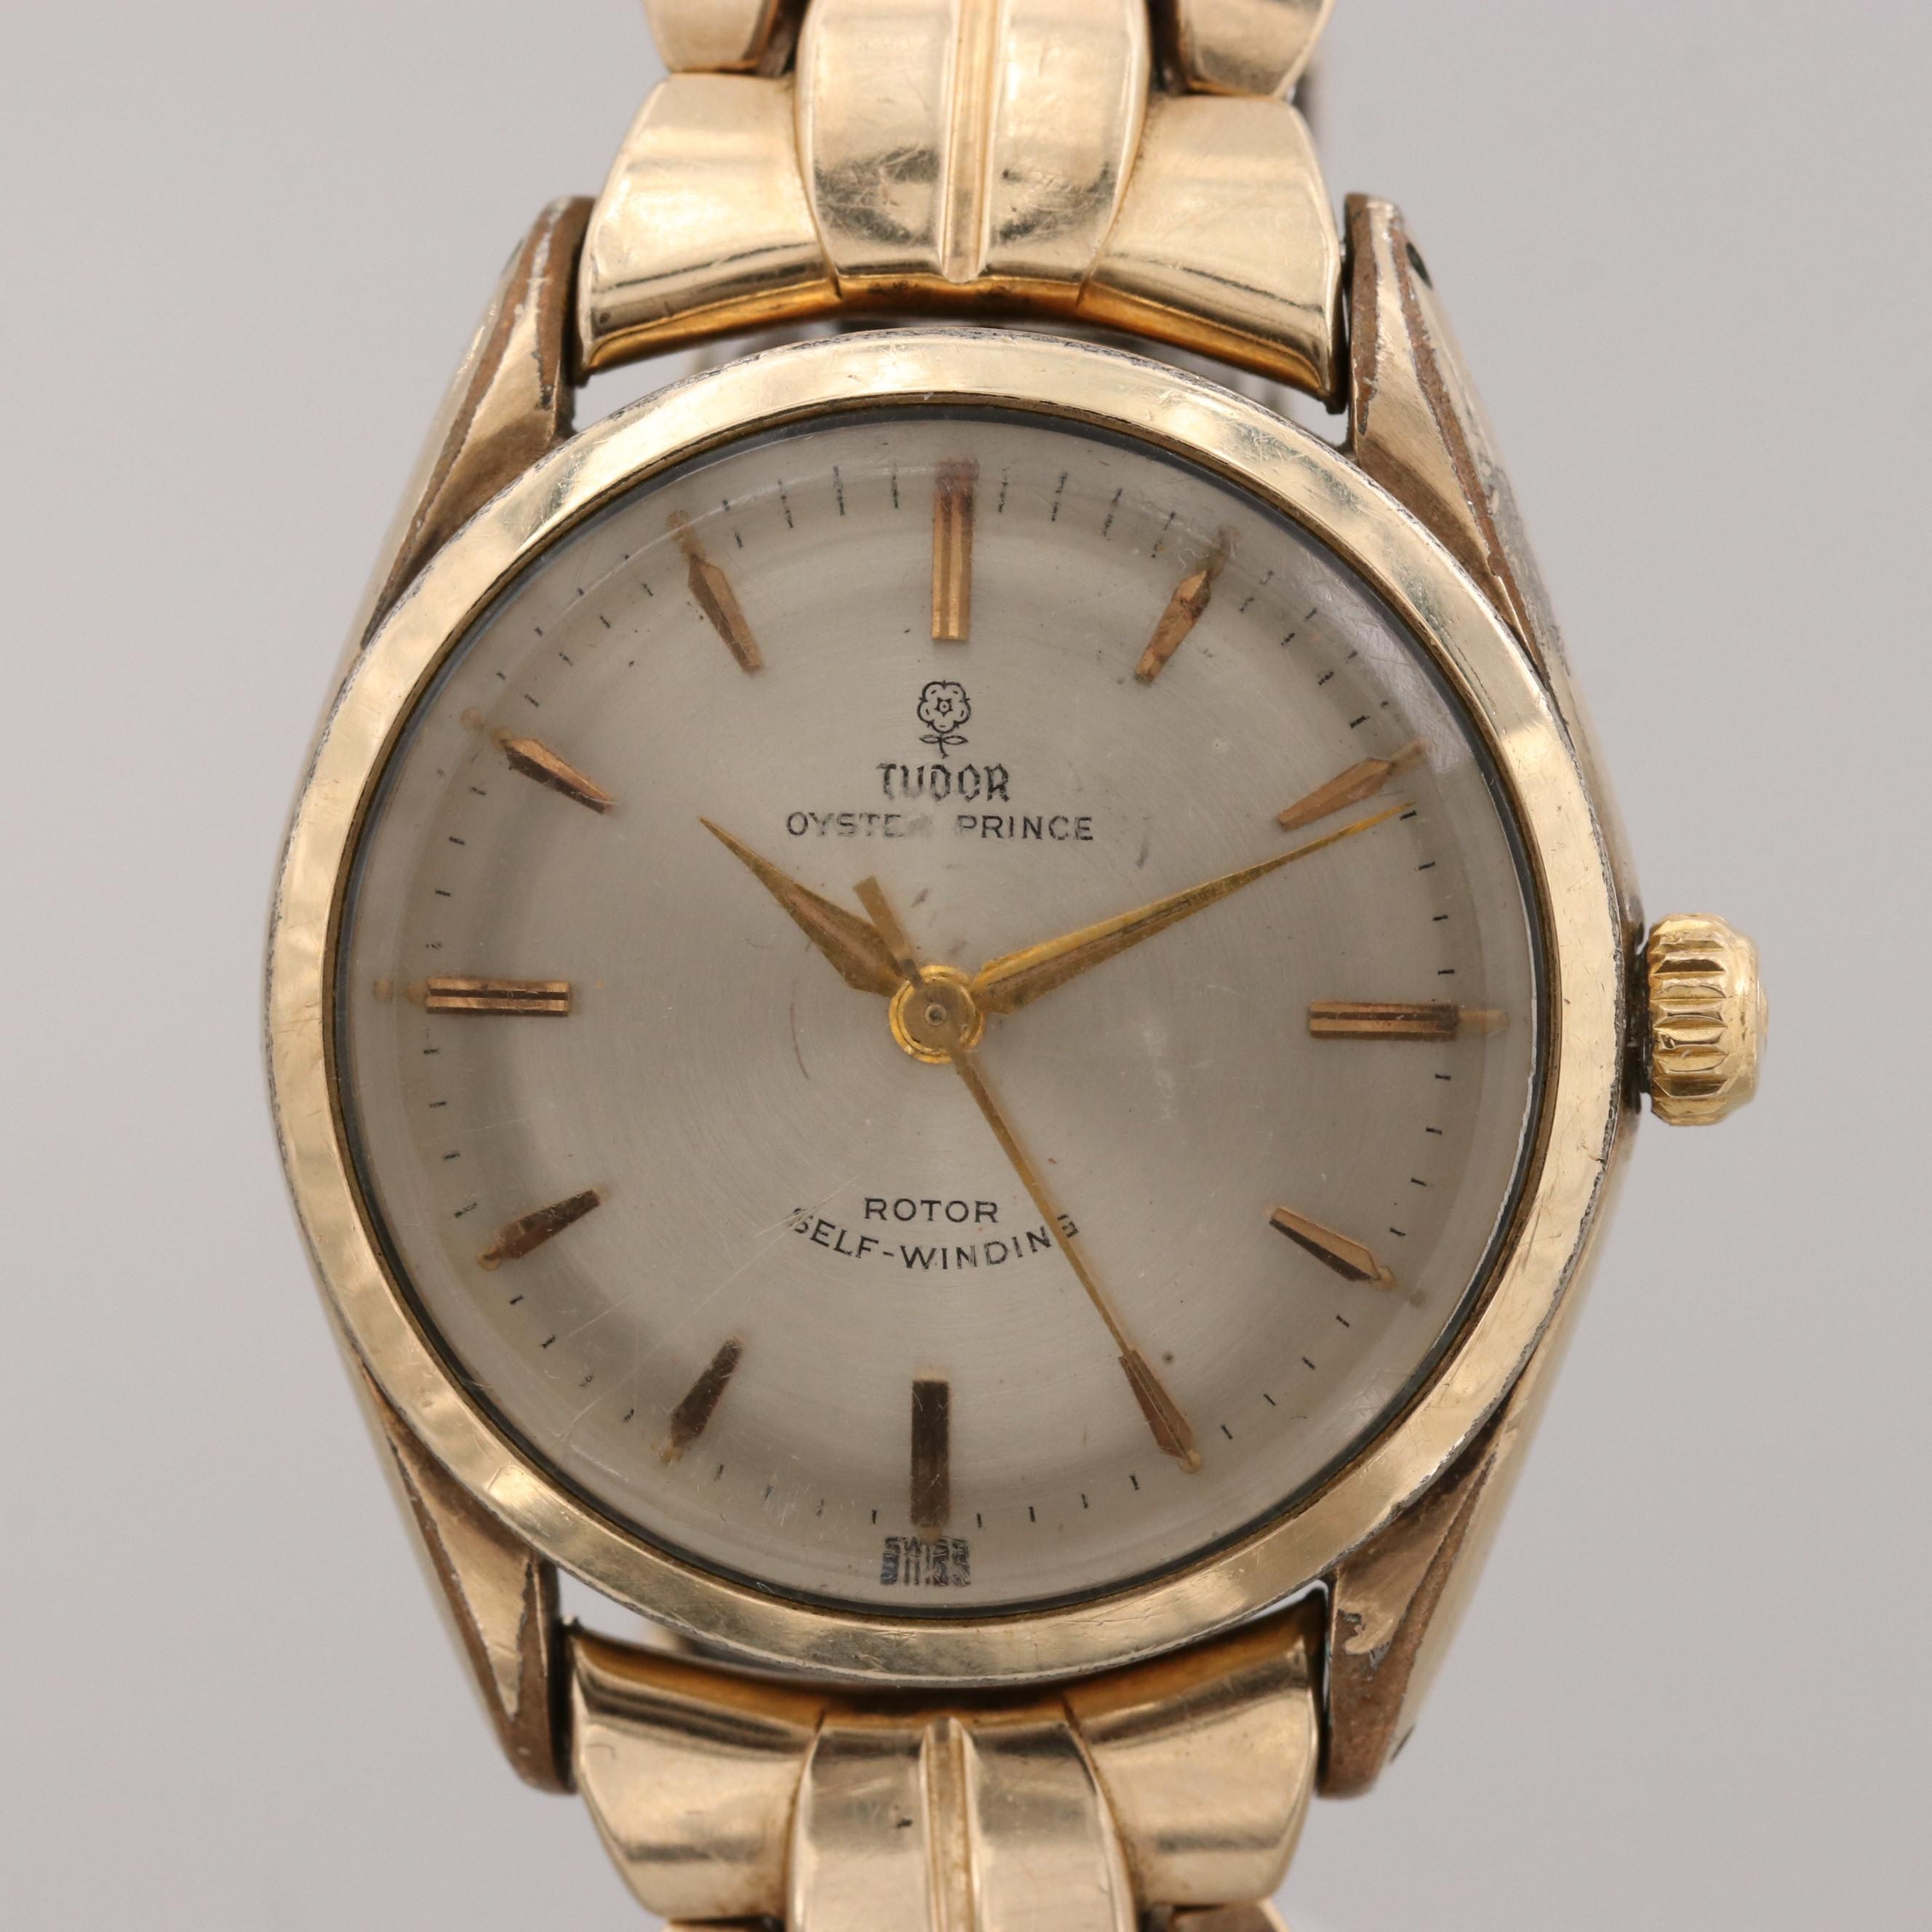 Vintage Tudor Oyster Prince Gold Tone Automatic Wristwatch